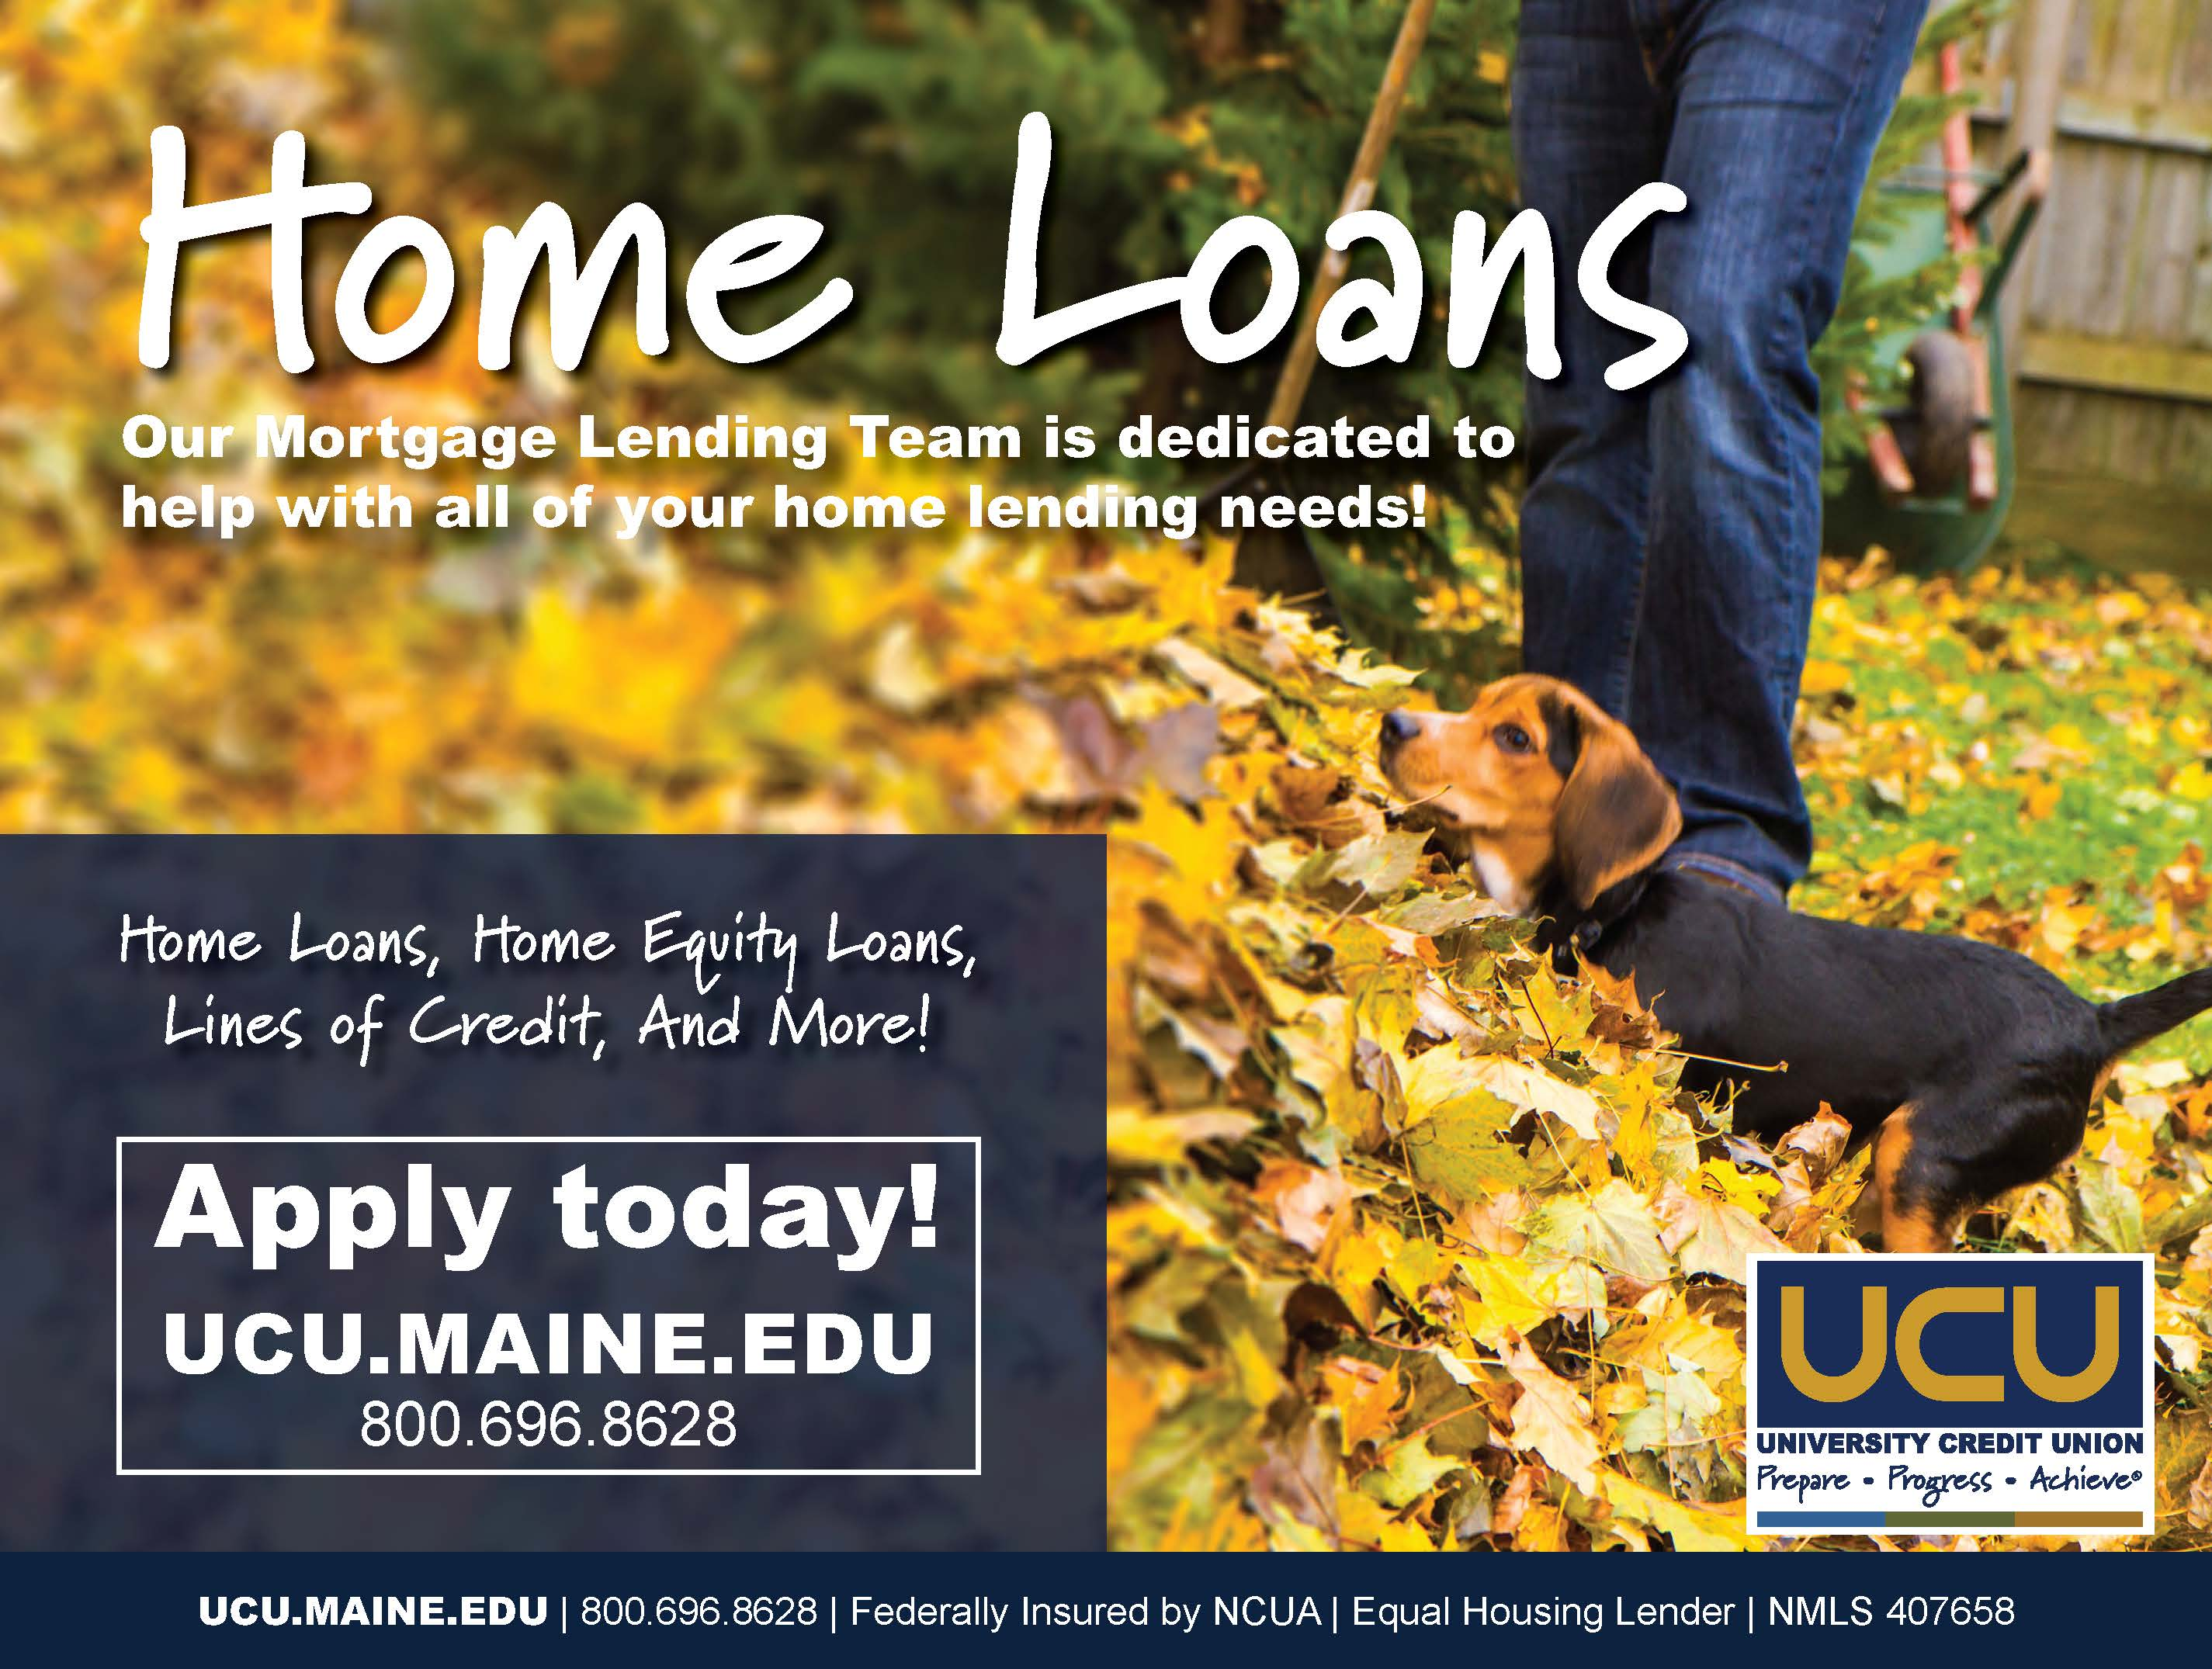 https://www.ucu.maine.edu/